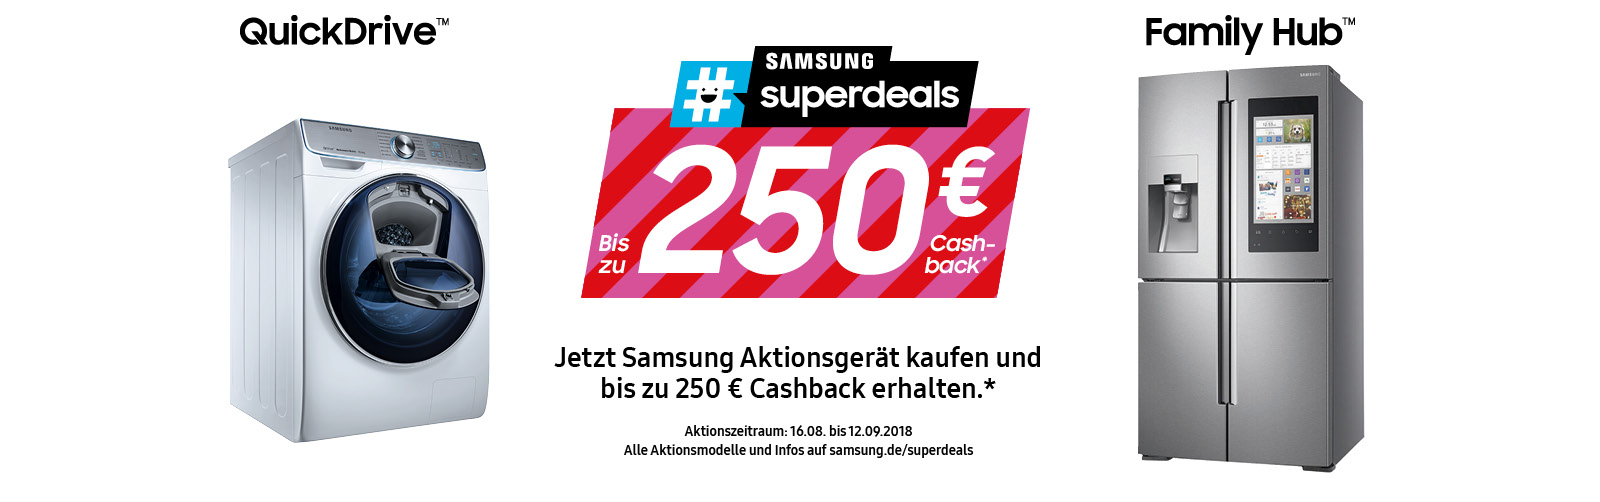 Samsung Superdeals bei EP: